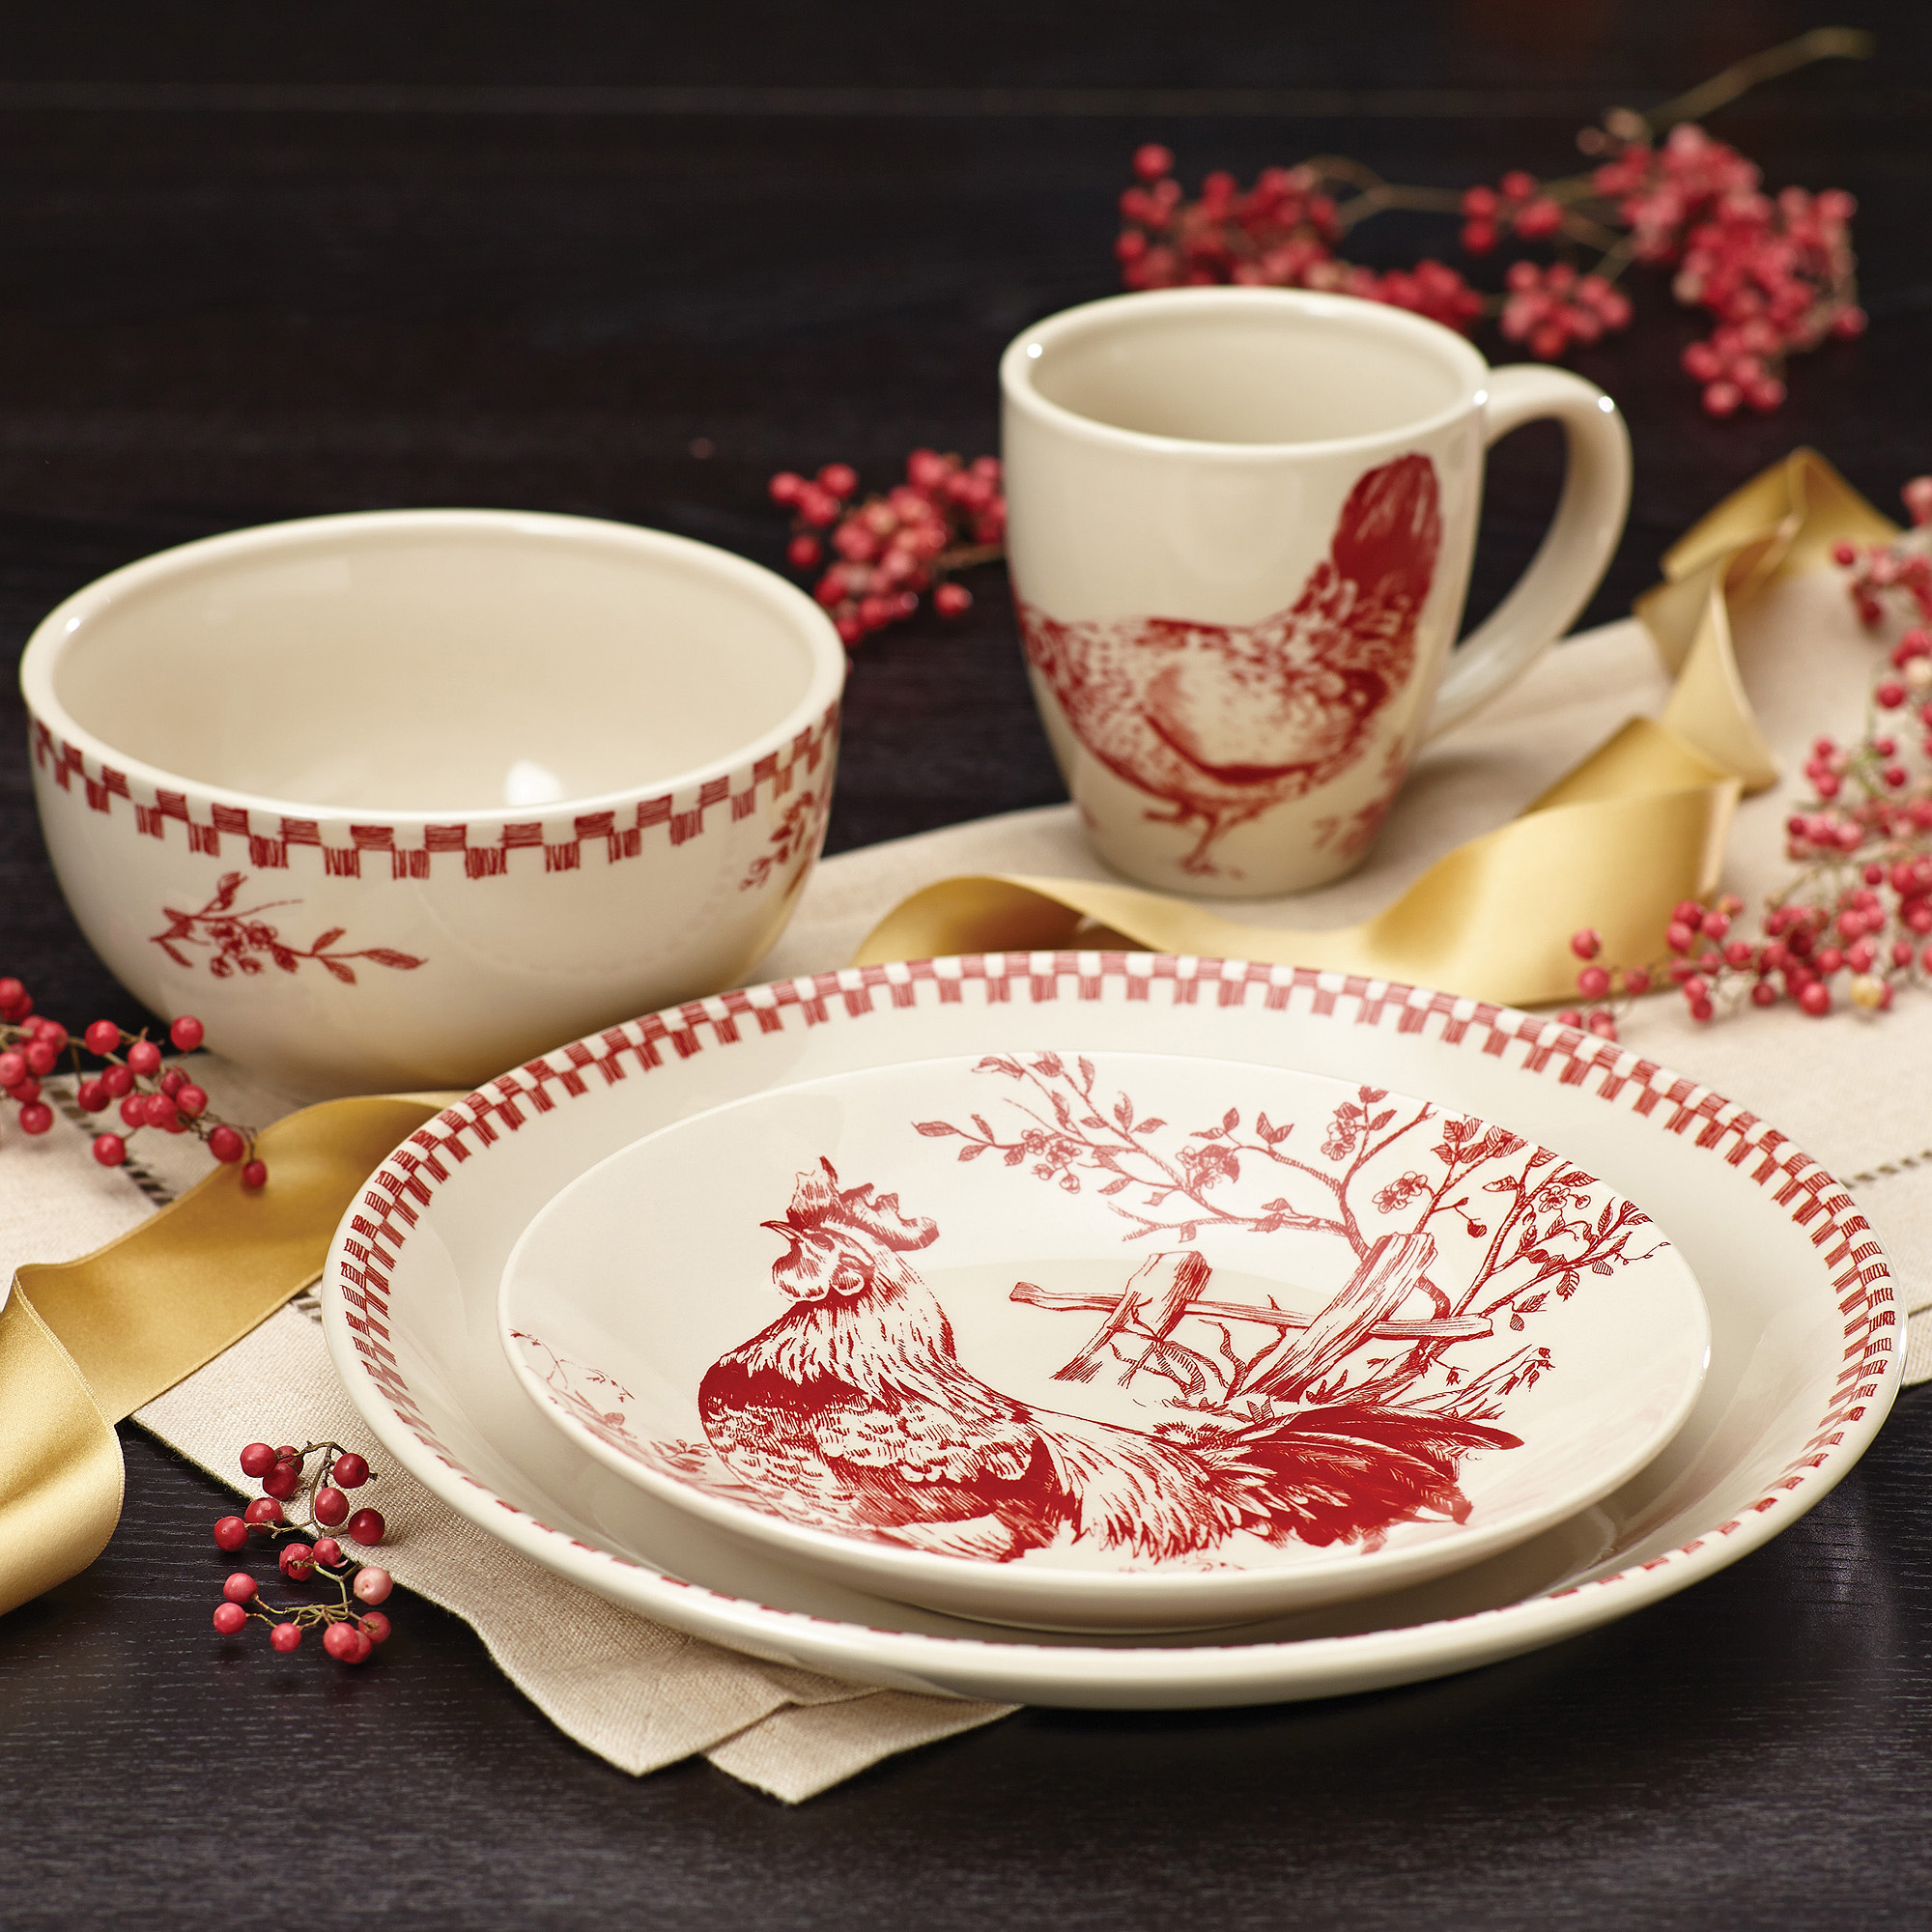 Country Dinnerware | Colorful Dinnerware | Stoneware Dinnerware Sets